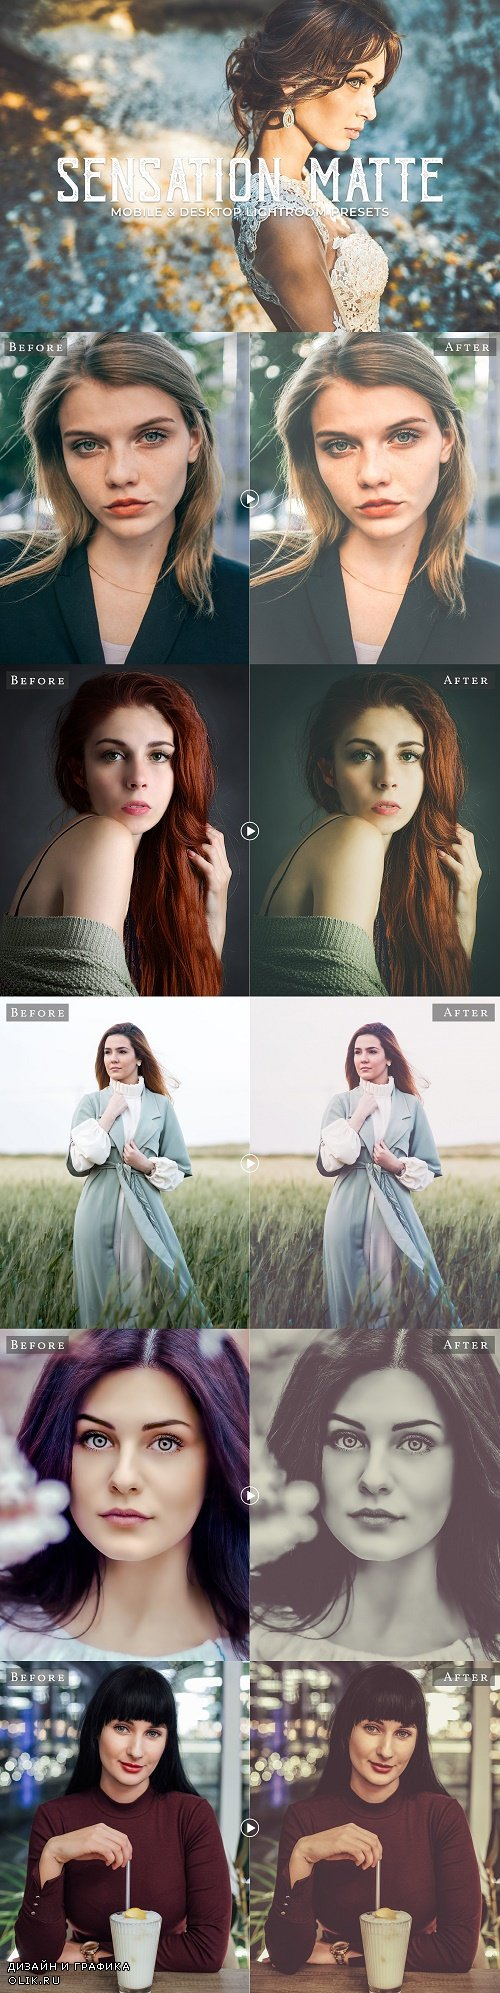 Sensation Matte Lightroom Presets - 3403415